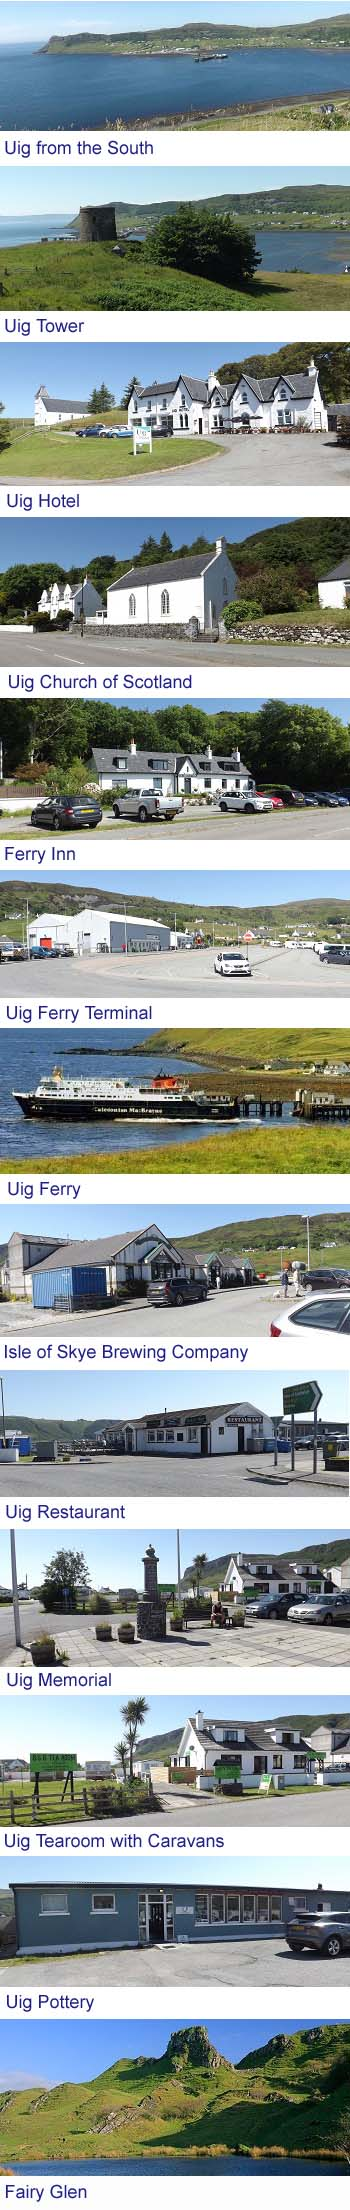 Uig Photos